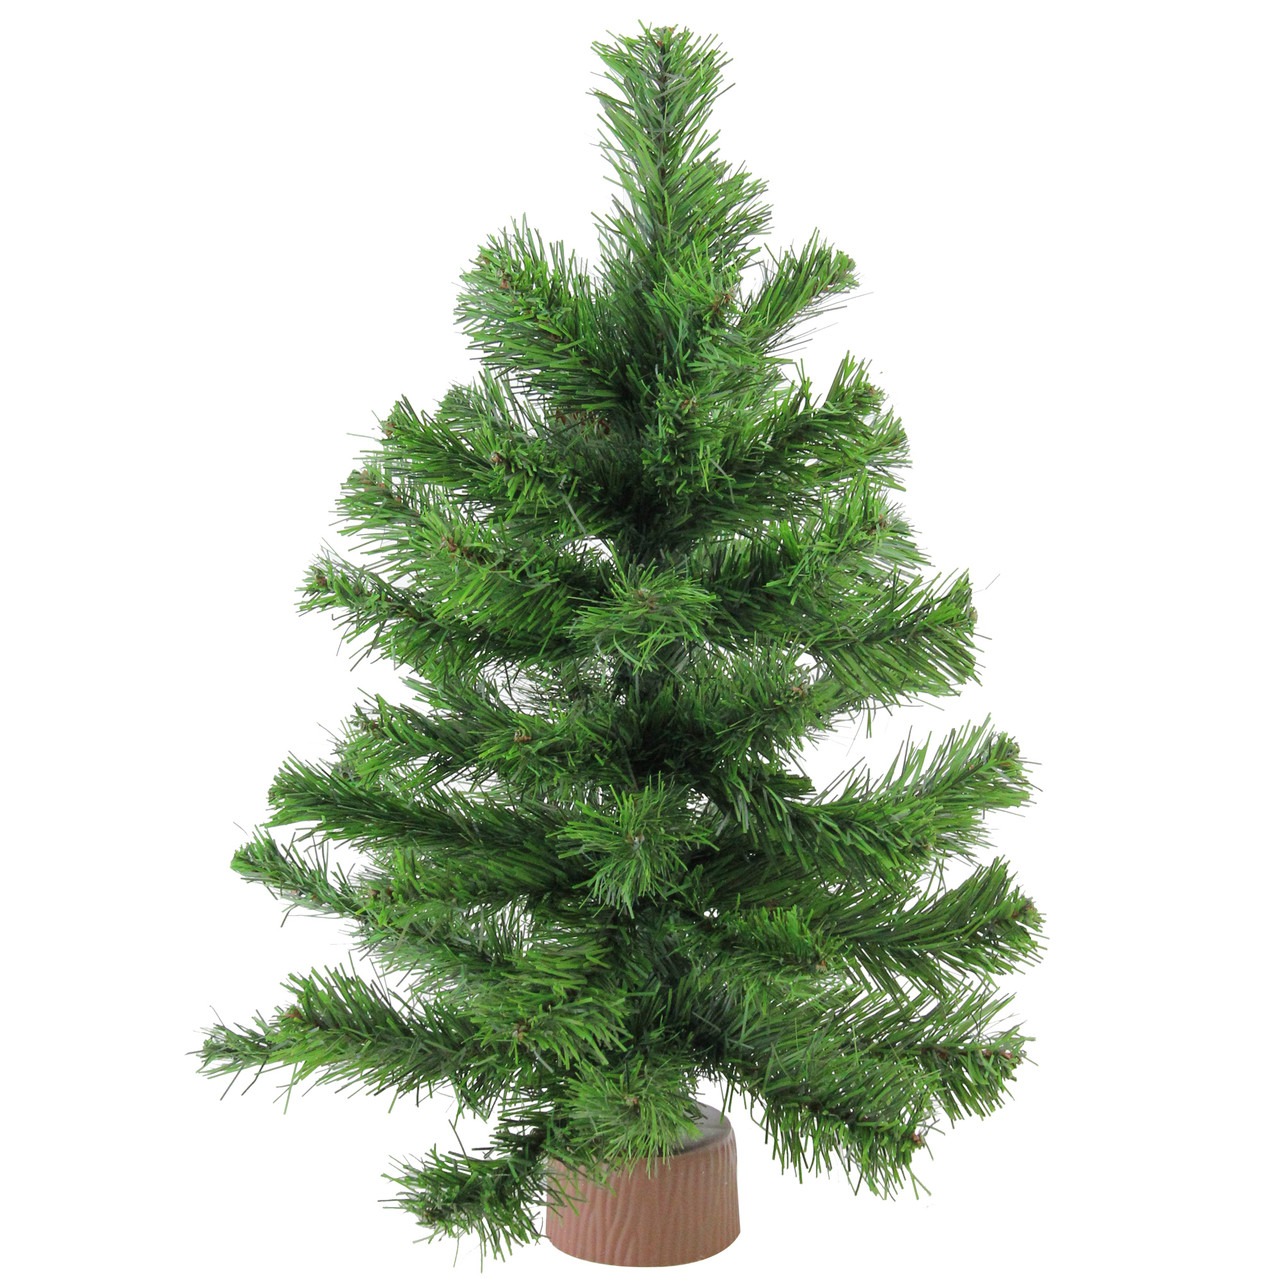 18 mini pine artificial christmas tree in faux wood base unlit 32614948 - Mini Artificial Christmas Trees